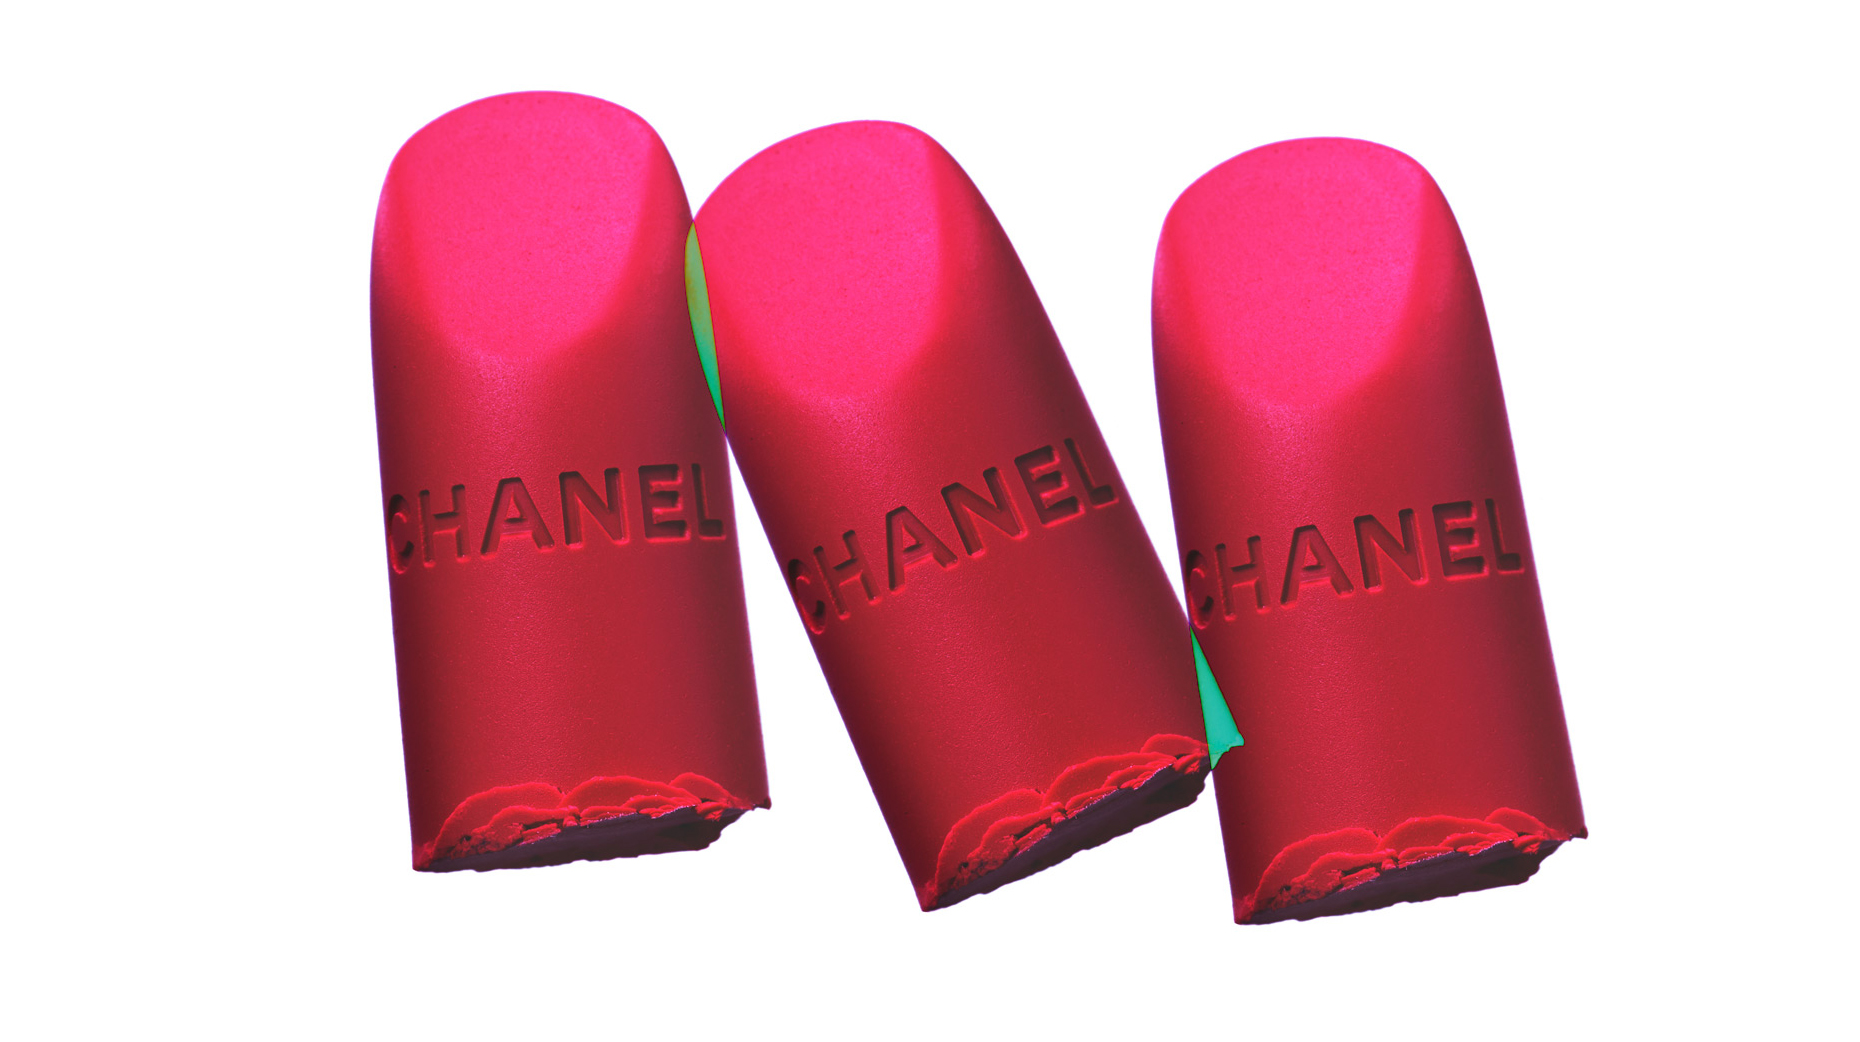 luis santana nyc still life photography Chanel-Lipstick